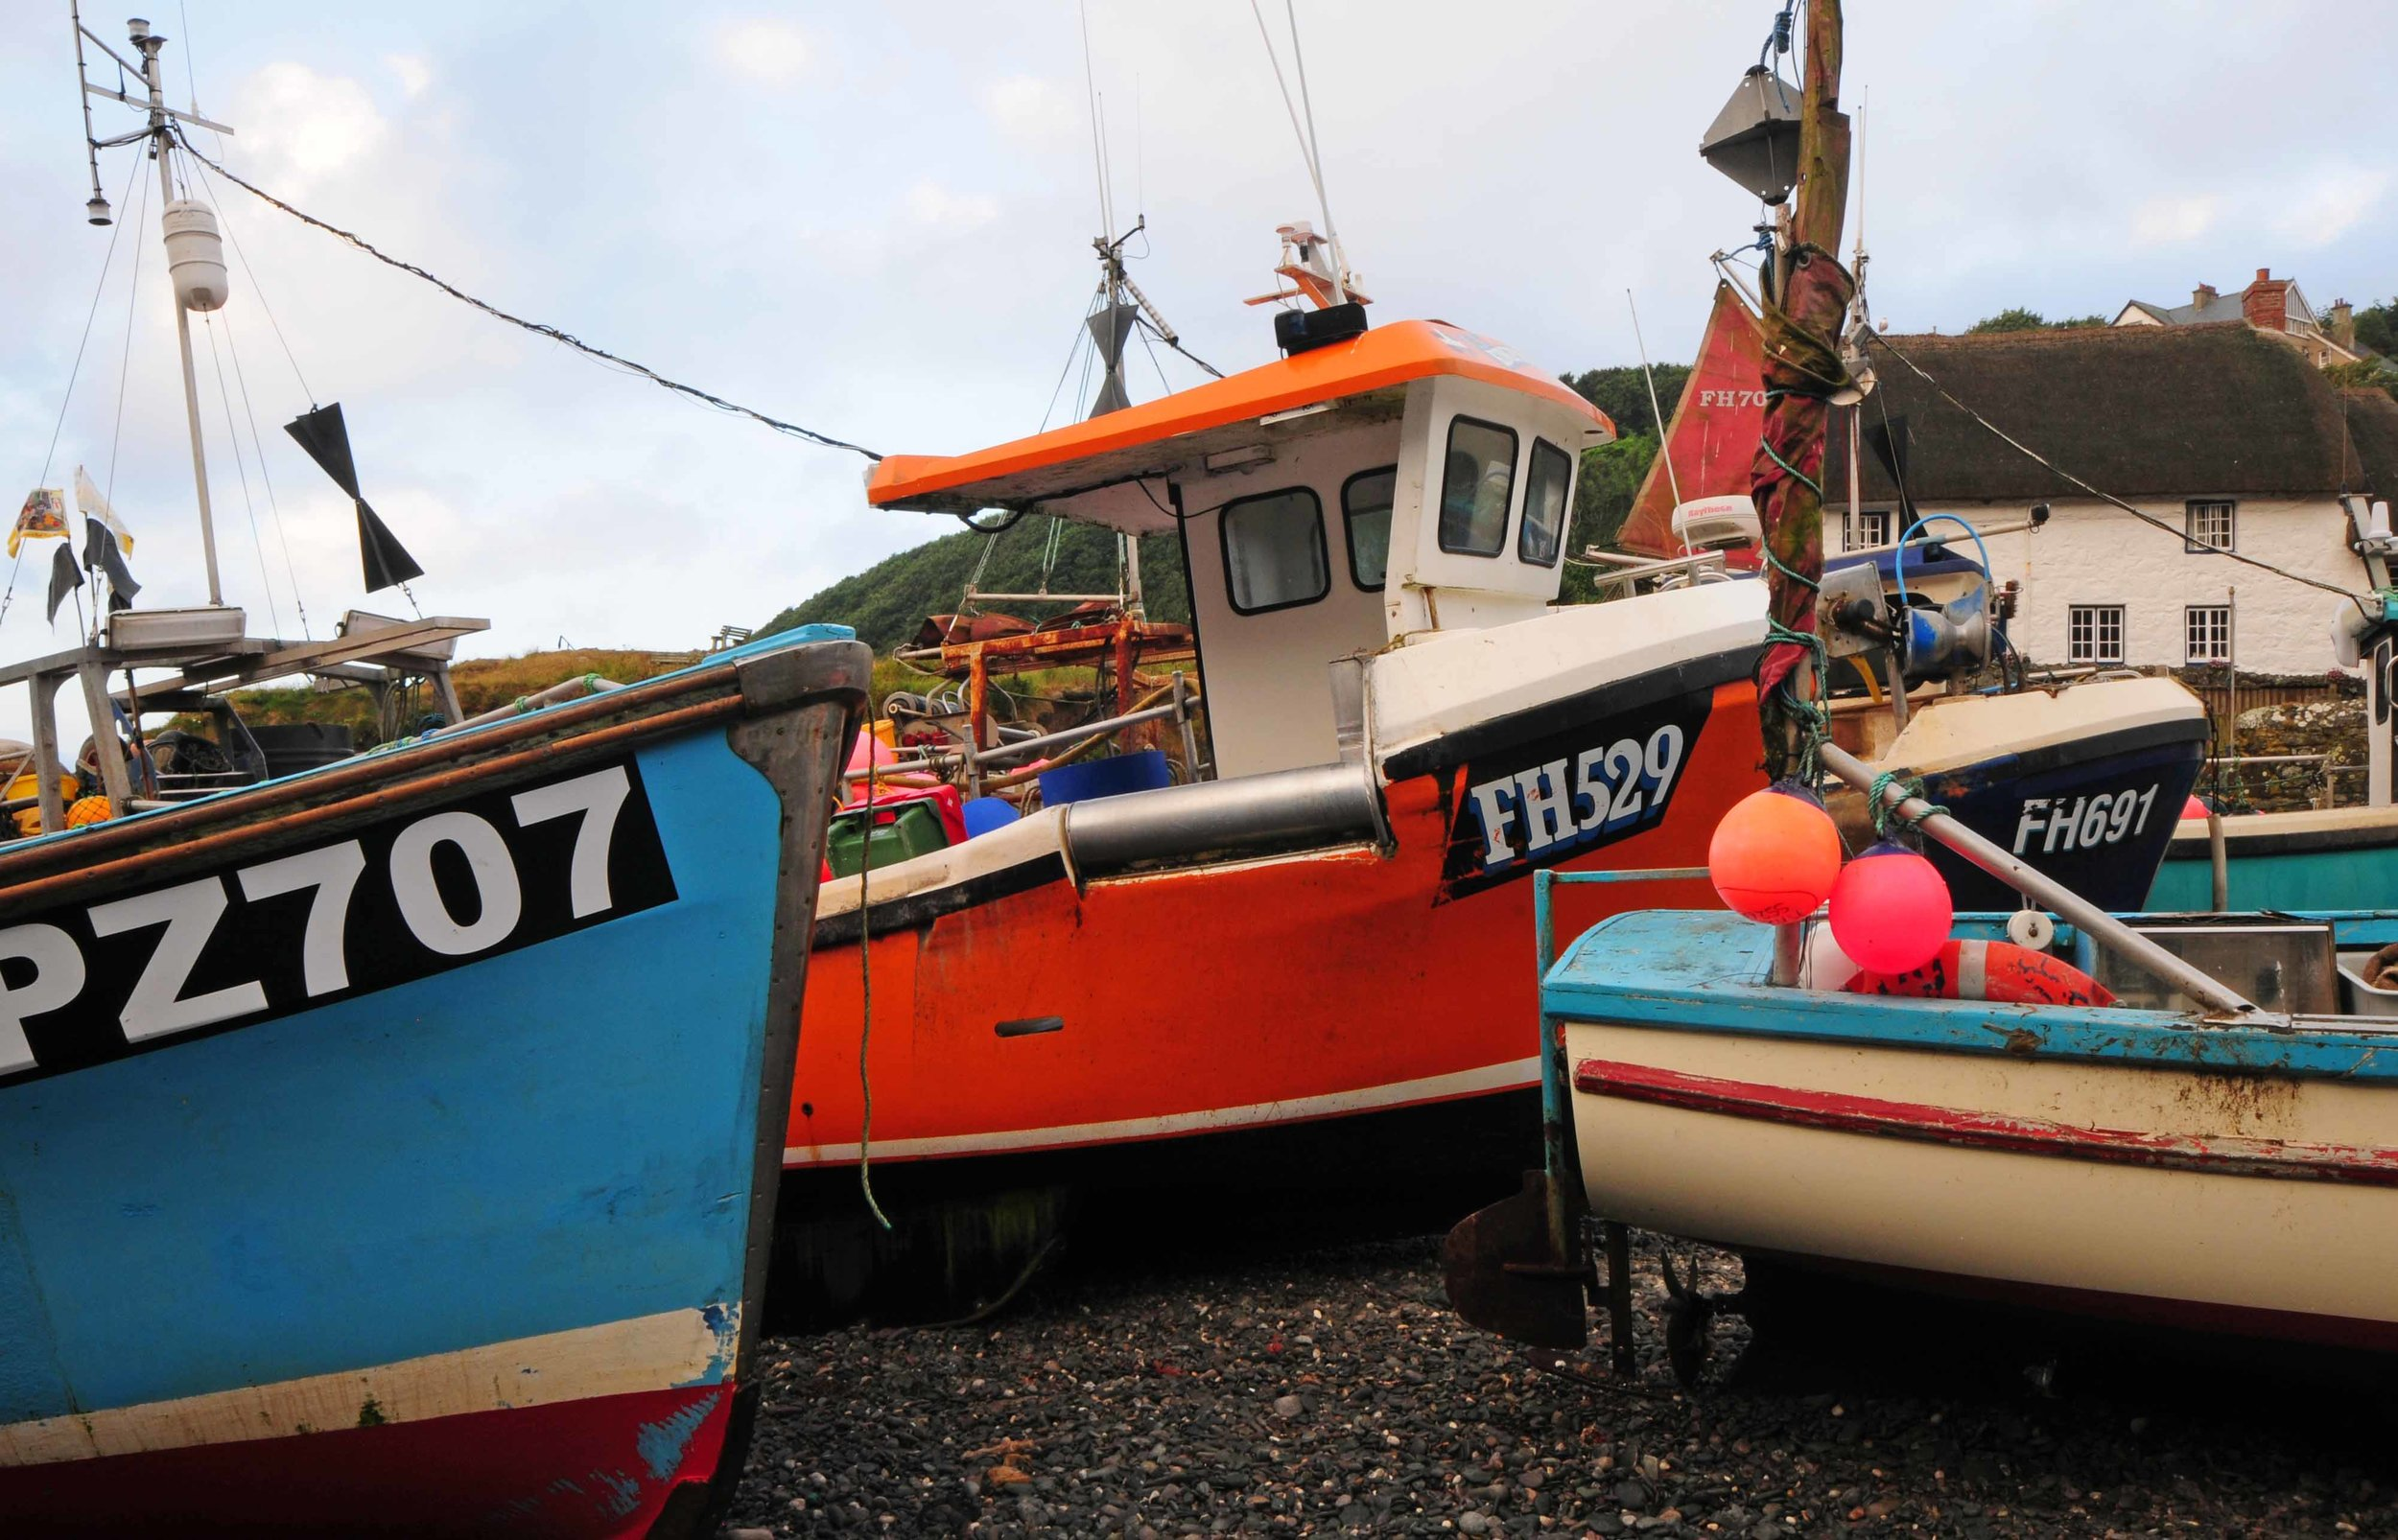 Three Fishers, Cadgwith.jpg